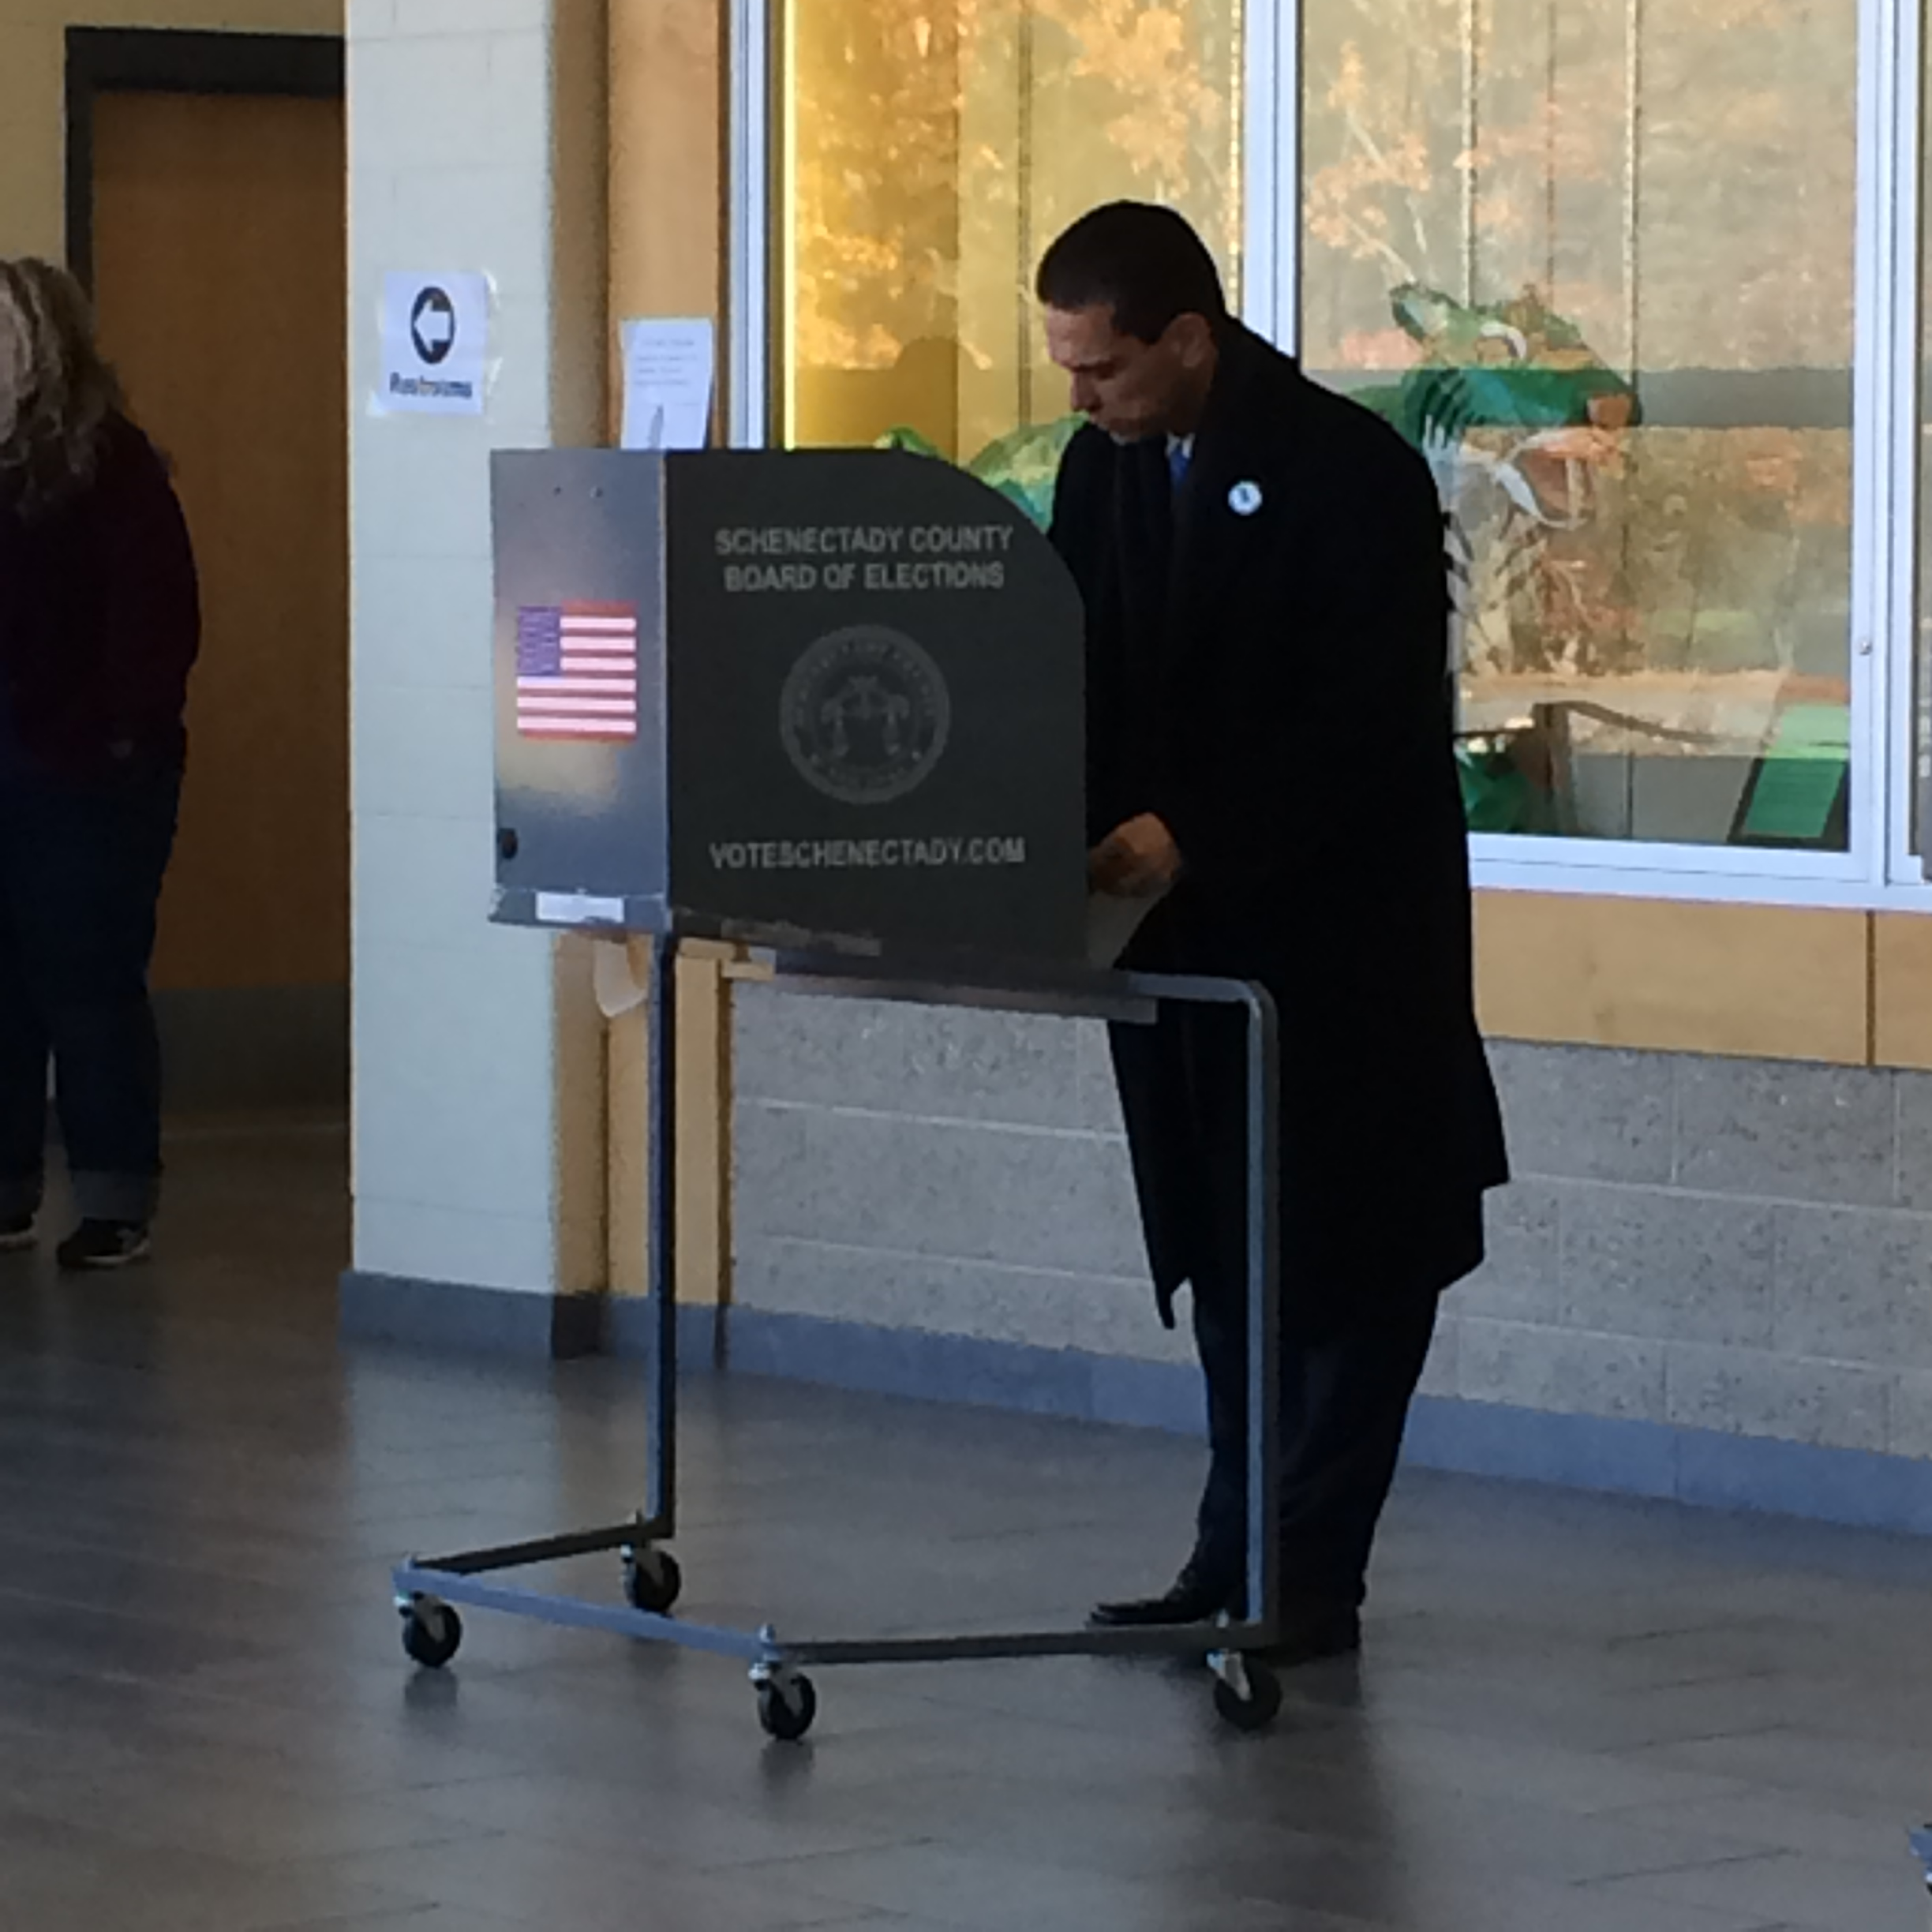 Assemblyman Santabarbara casting his vote on Election Day.